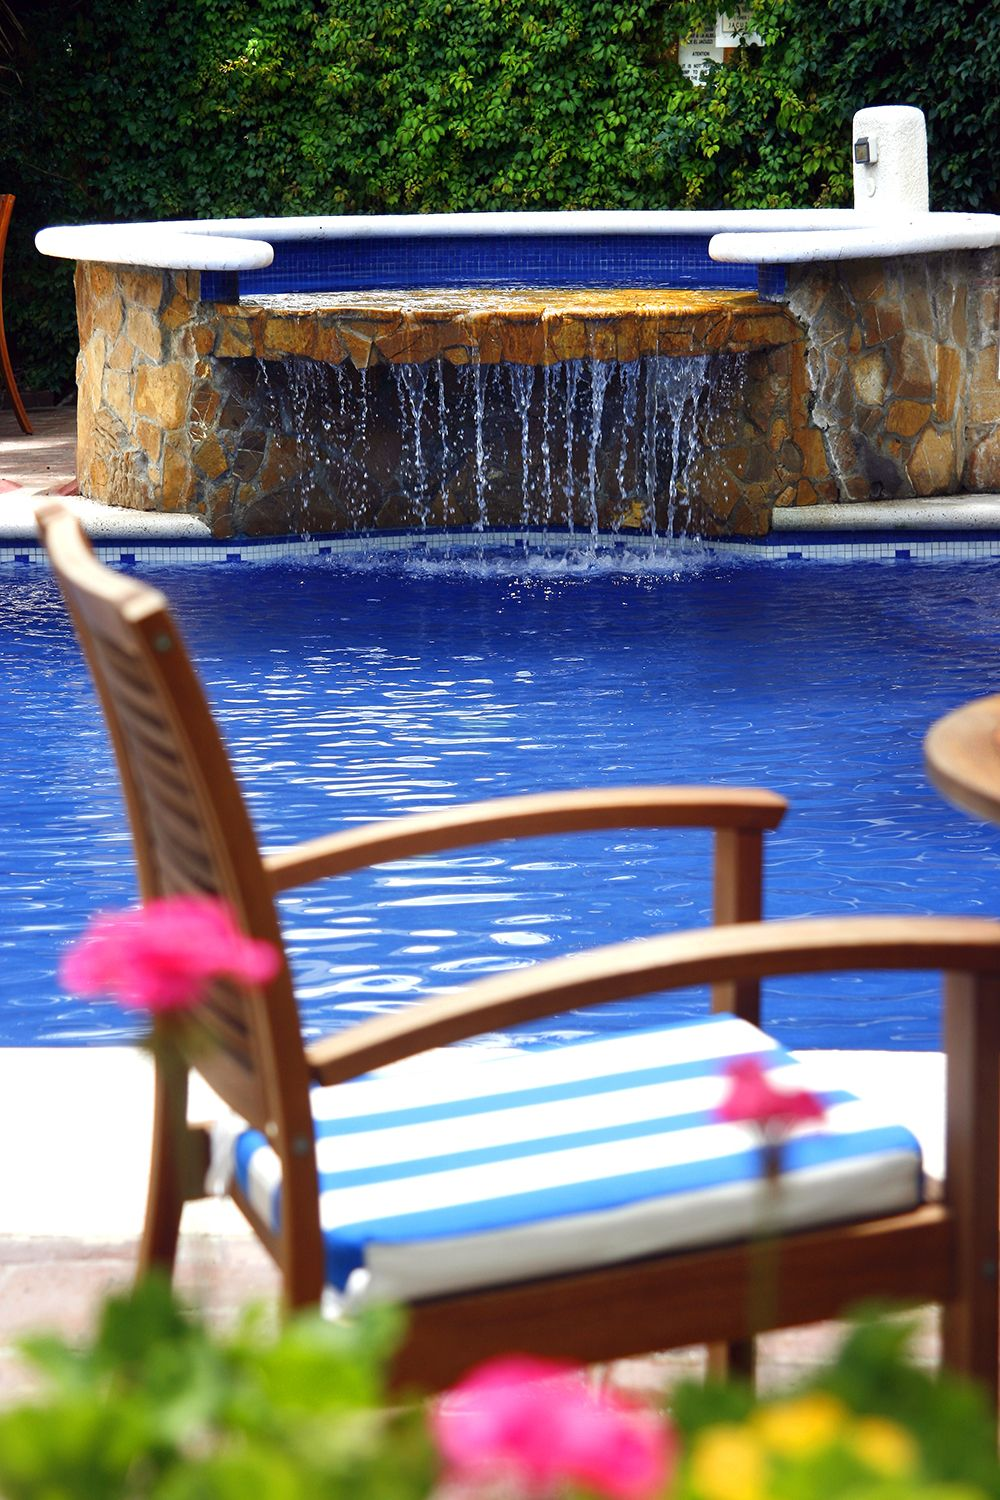 Relax in the countryside atmosphere of the pool at Hacienda los Laureles